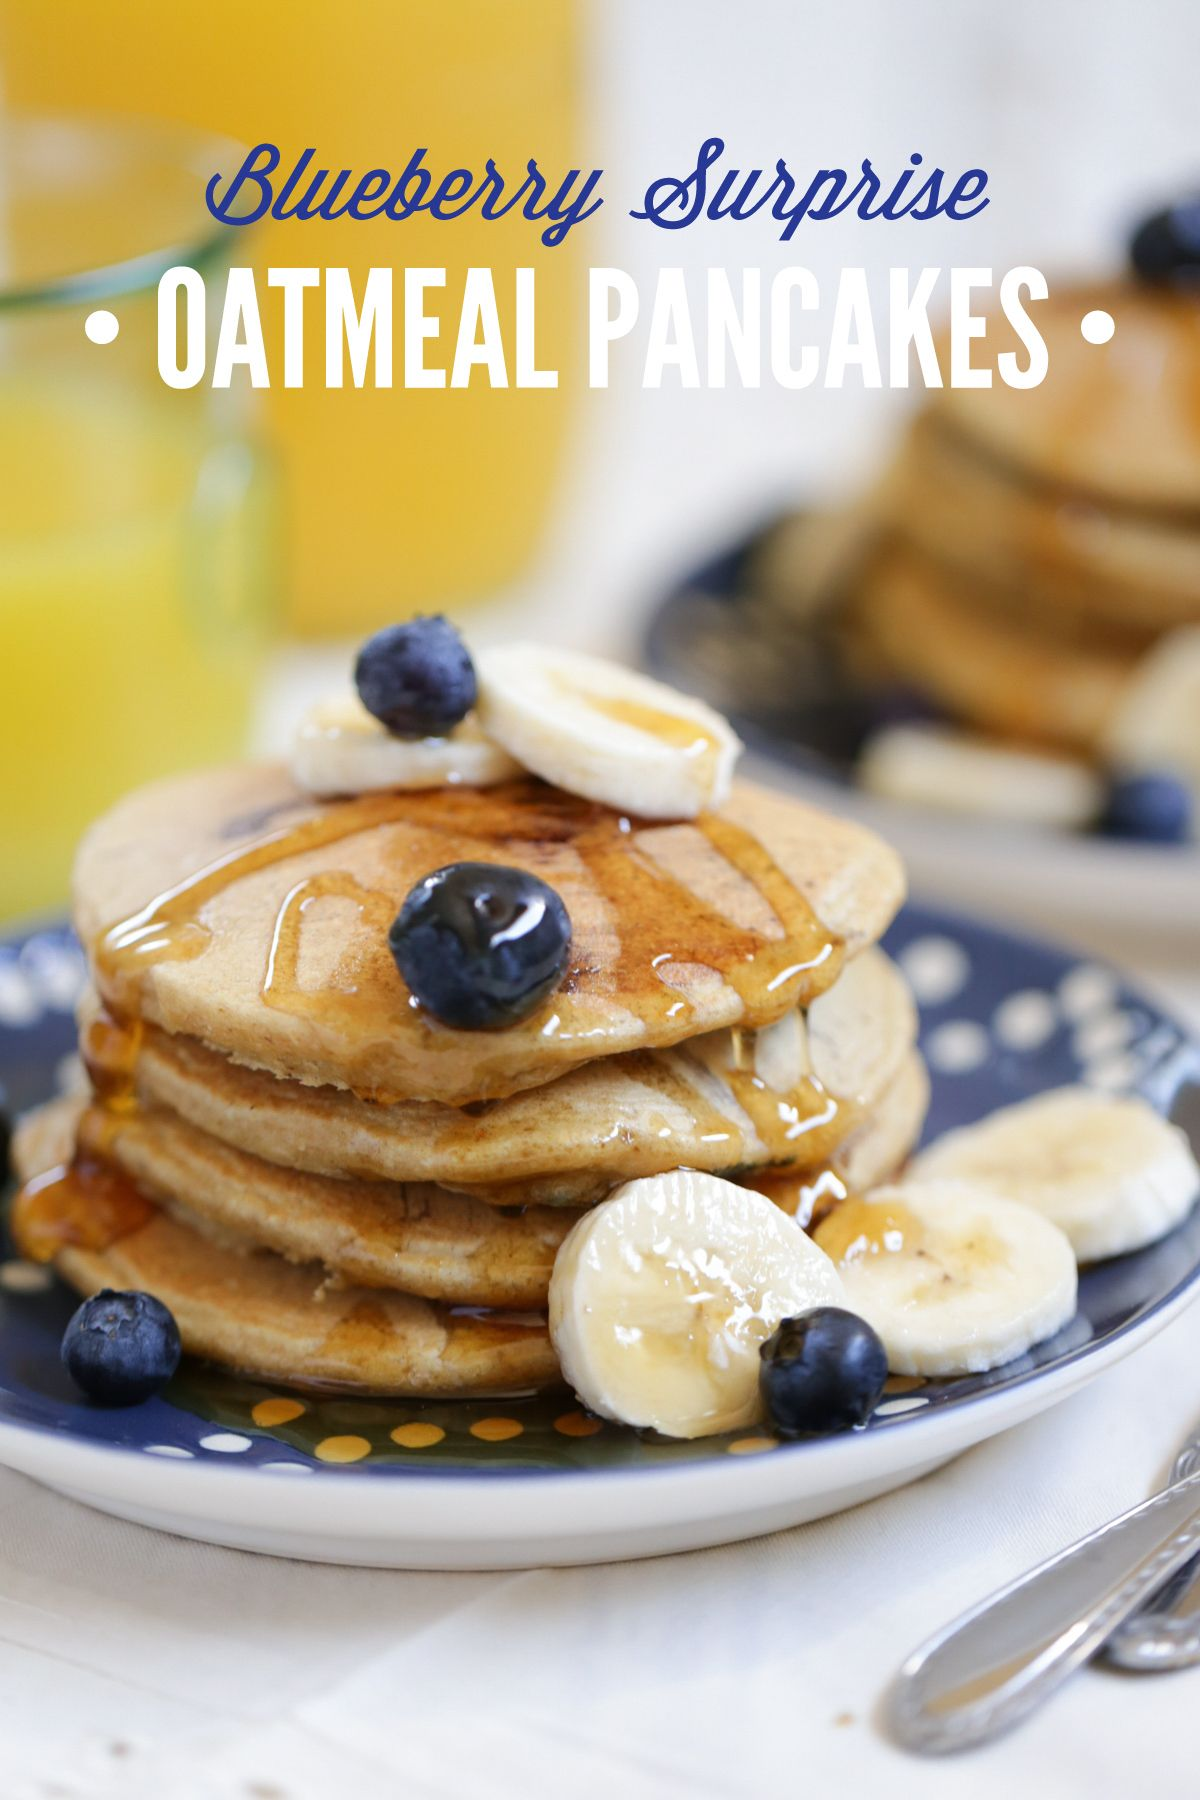 The BEST oatmeal pancakes made with fresh fruit and zero processed sugar. These naturally-sweetened, gluten-free oatmeal pancakes are super easy to make...